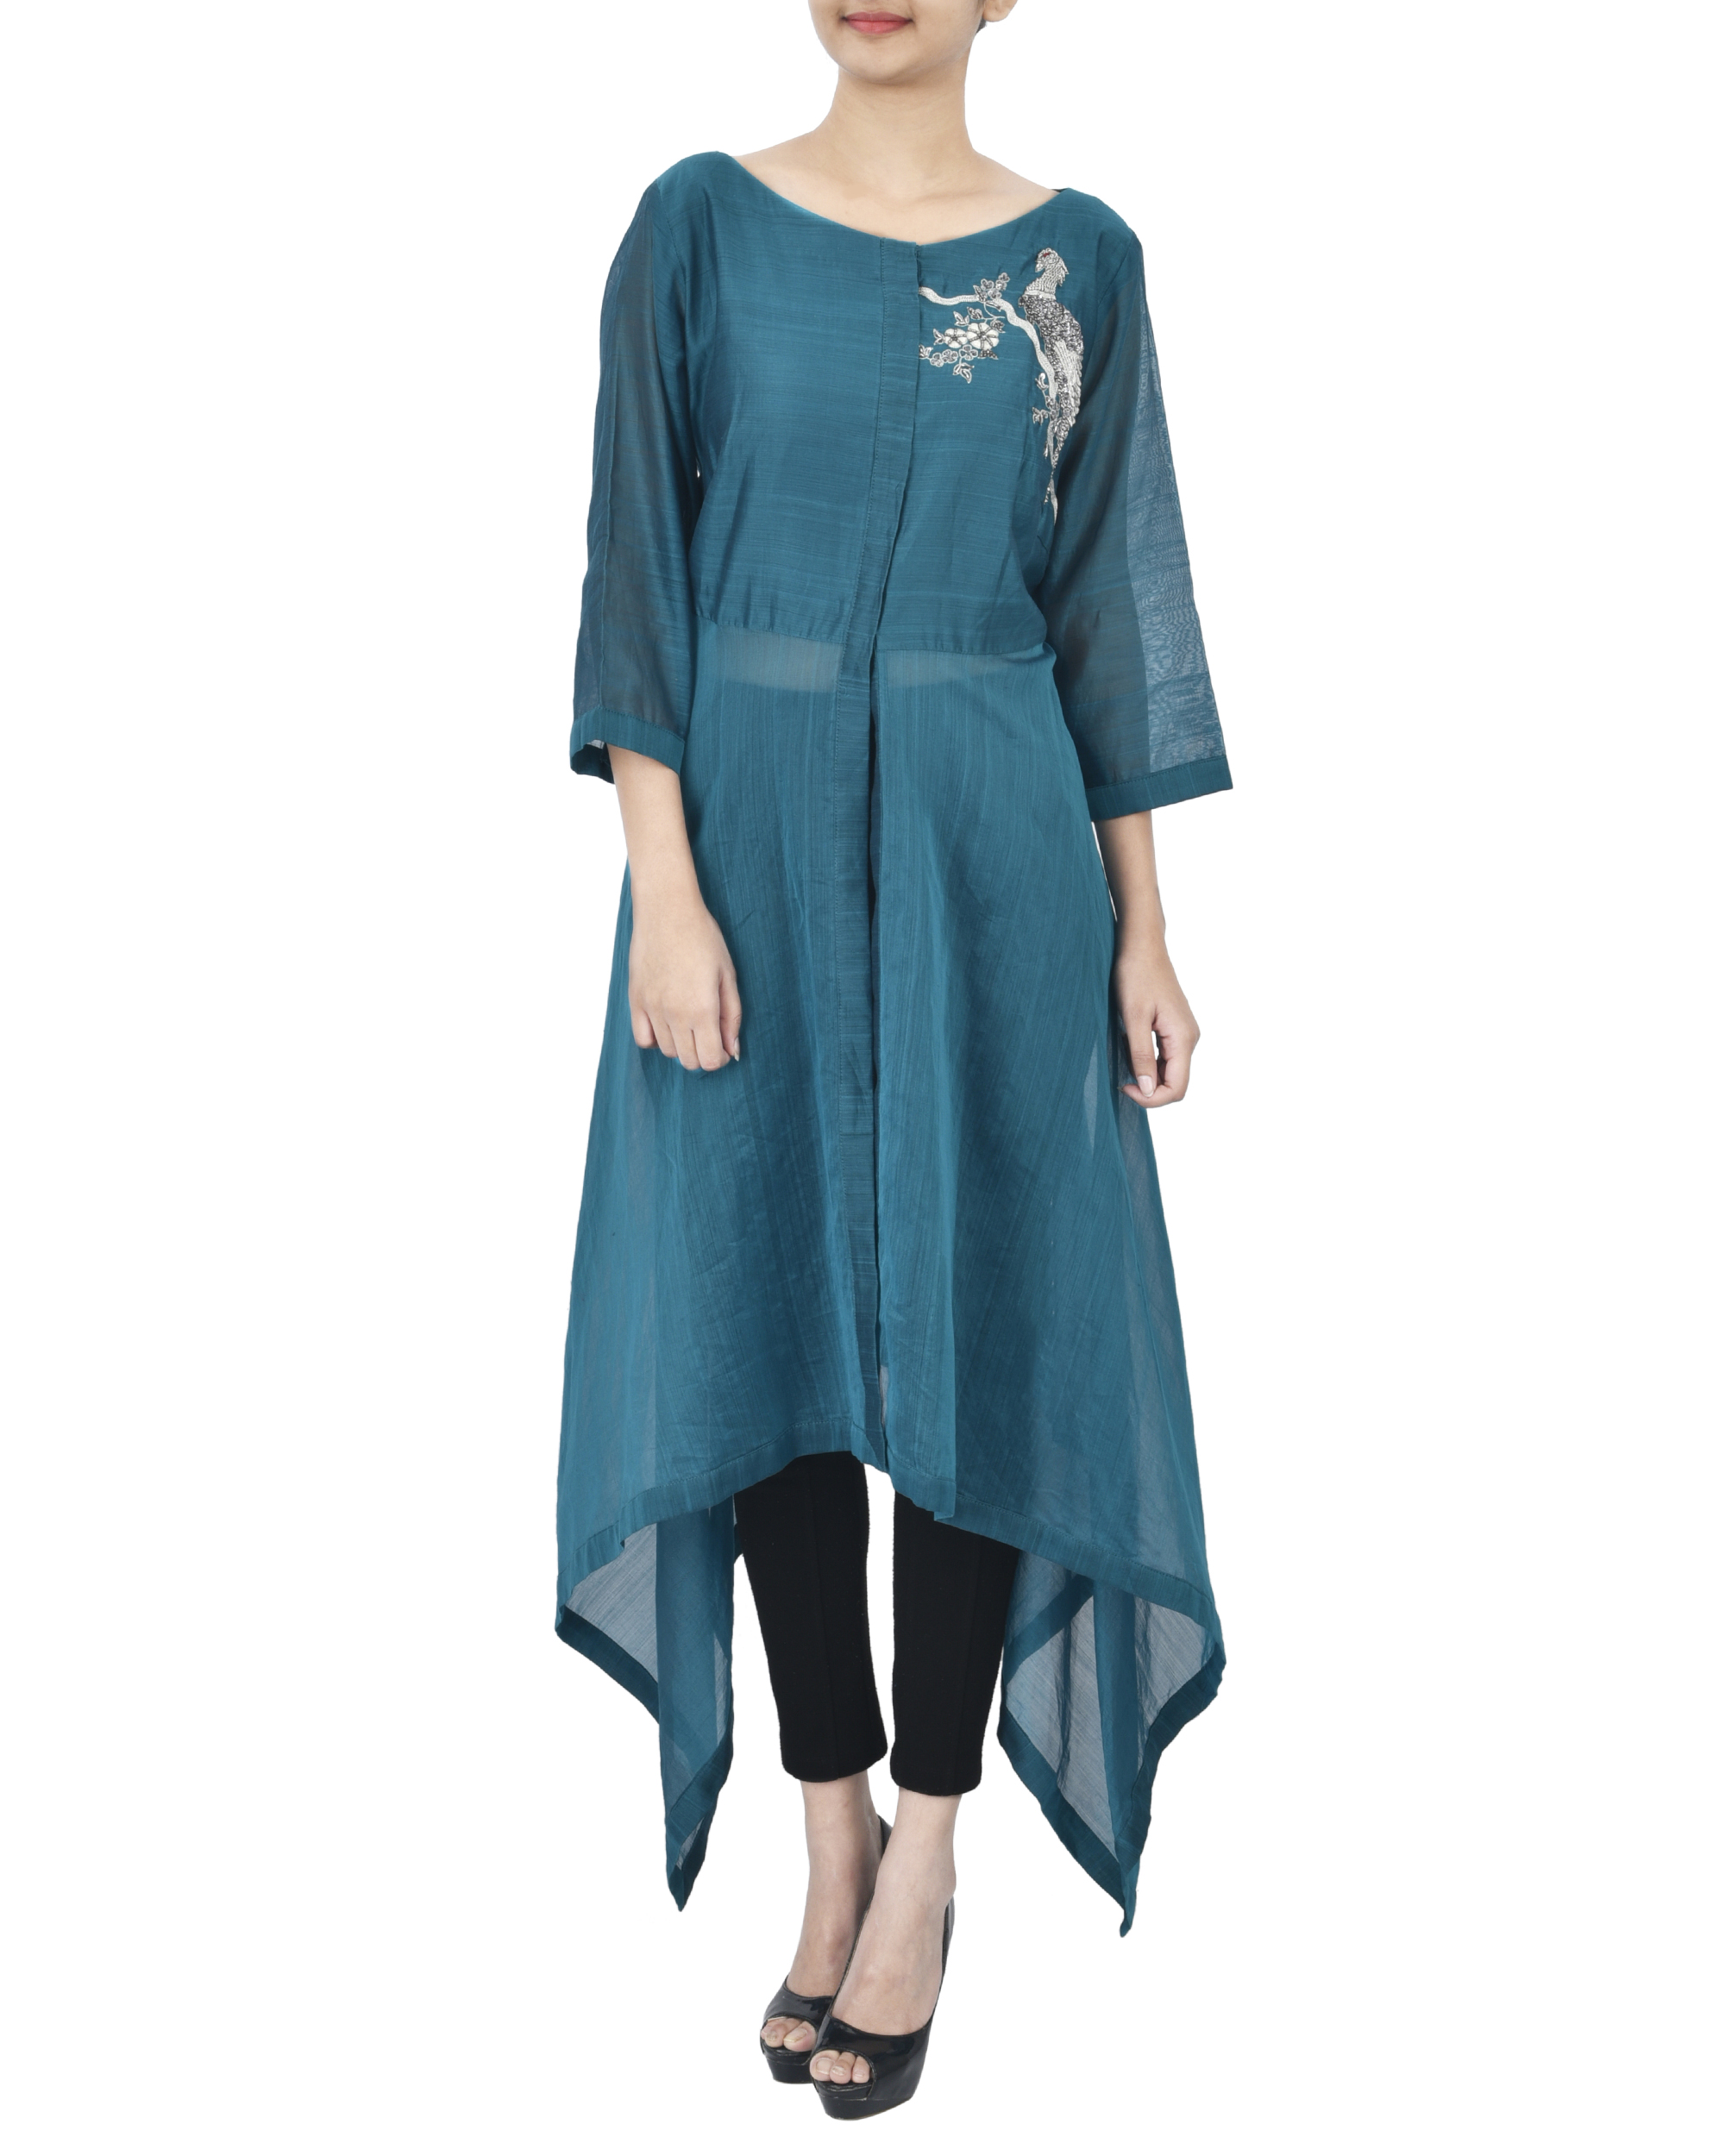 Blue tunic with silver zardozi embroidery